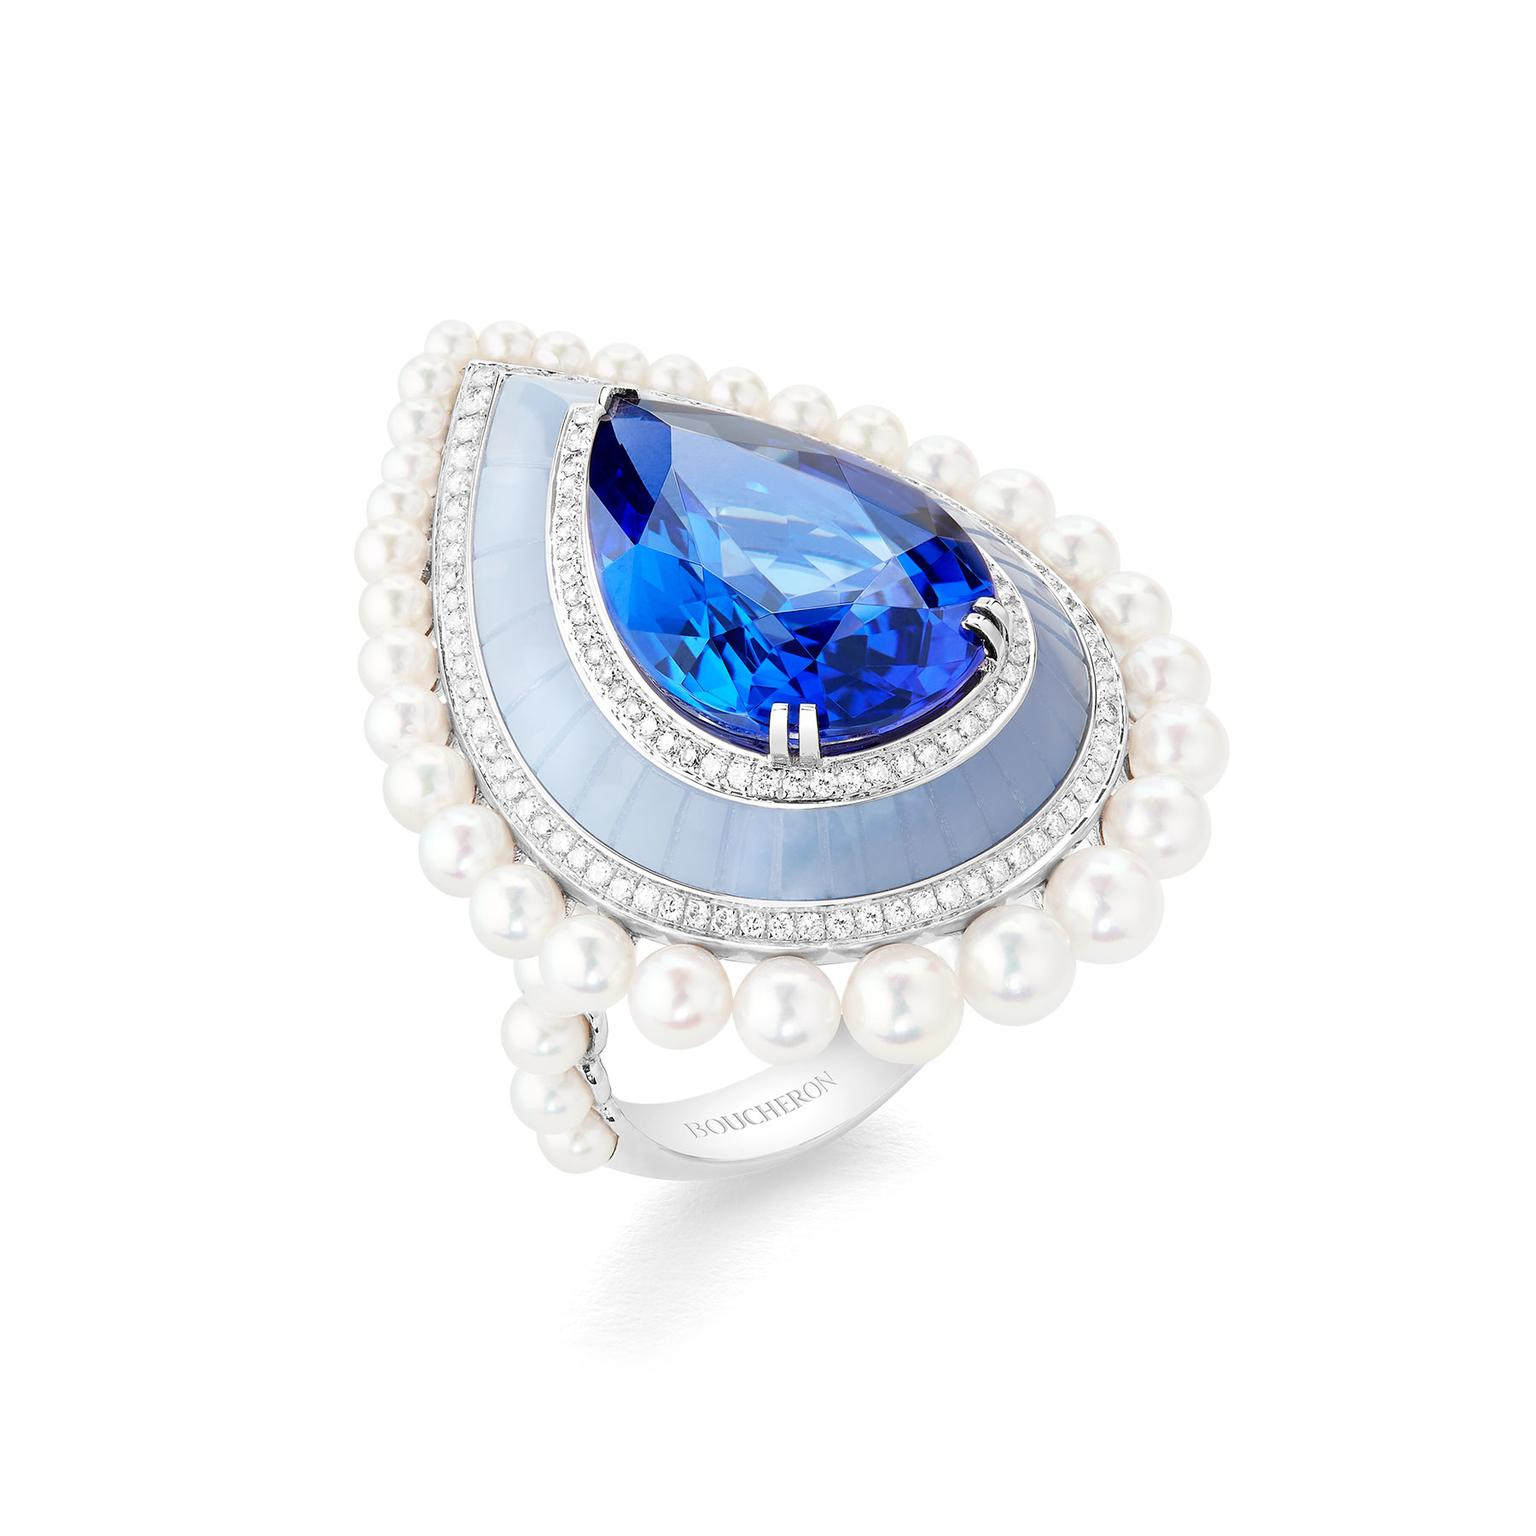 Boucheron Hiver Imperial Dome Graphique ring